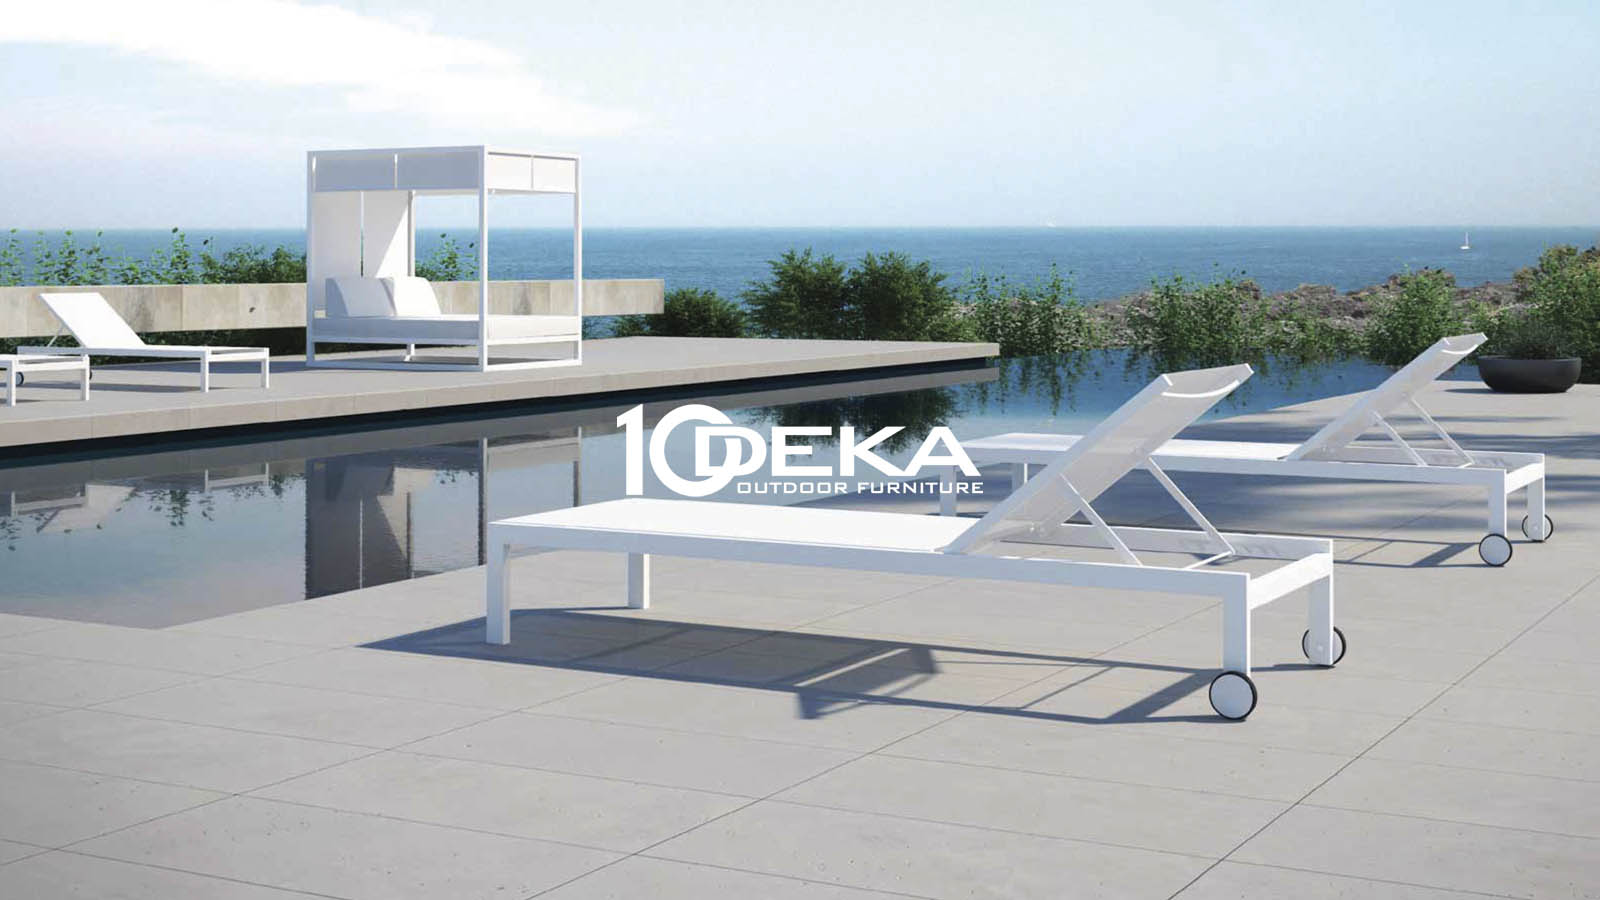 10deka Outdoor Furniture